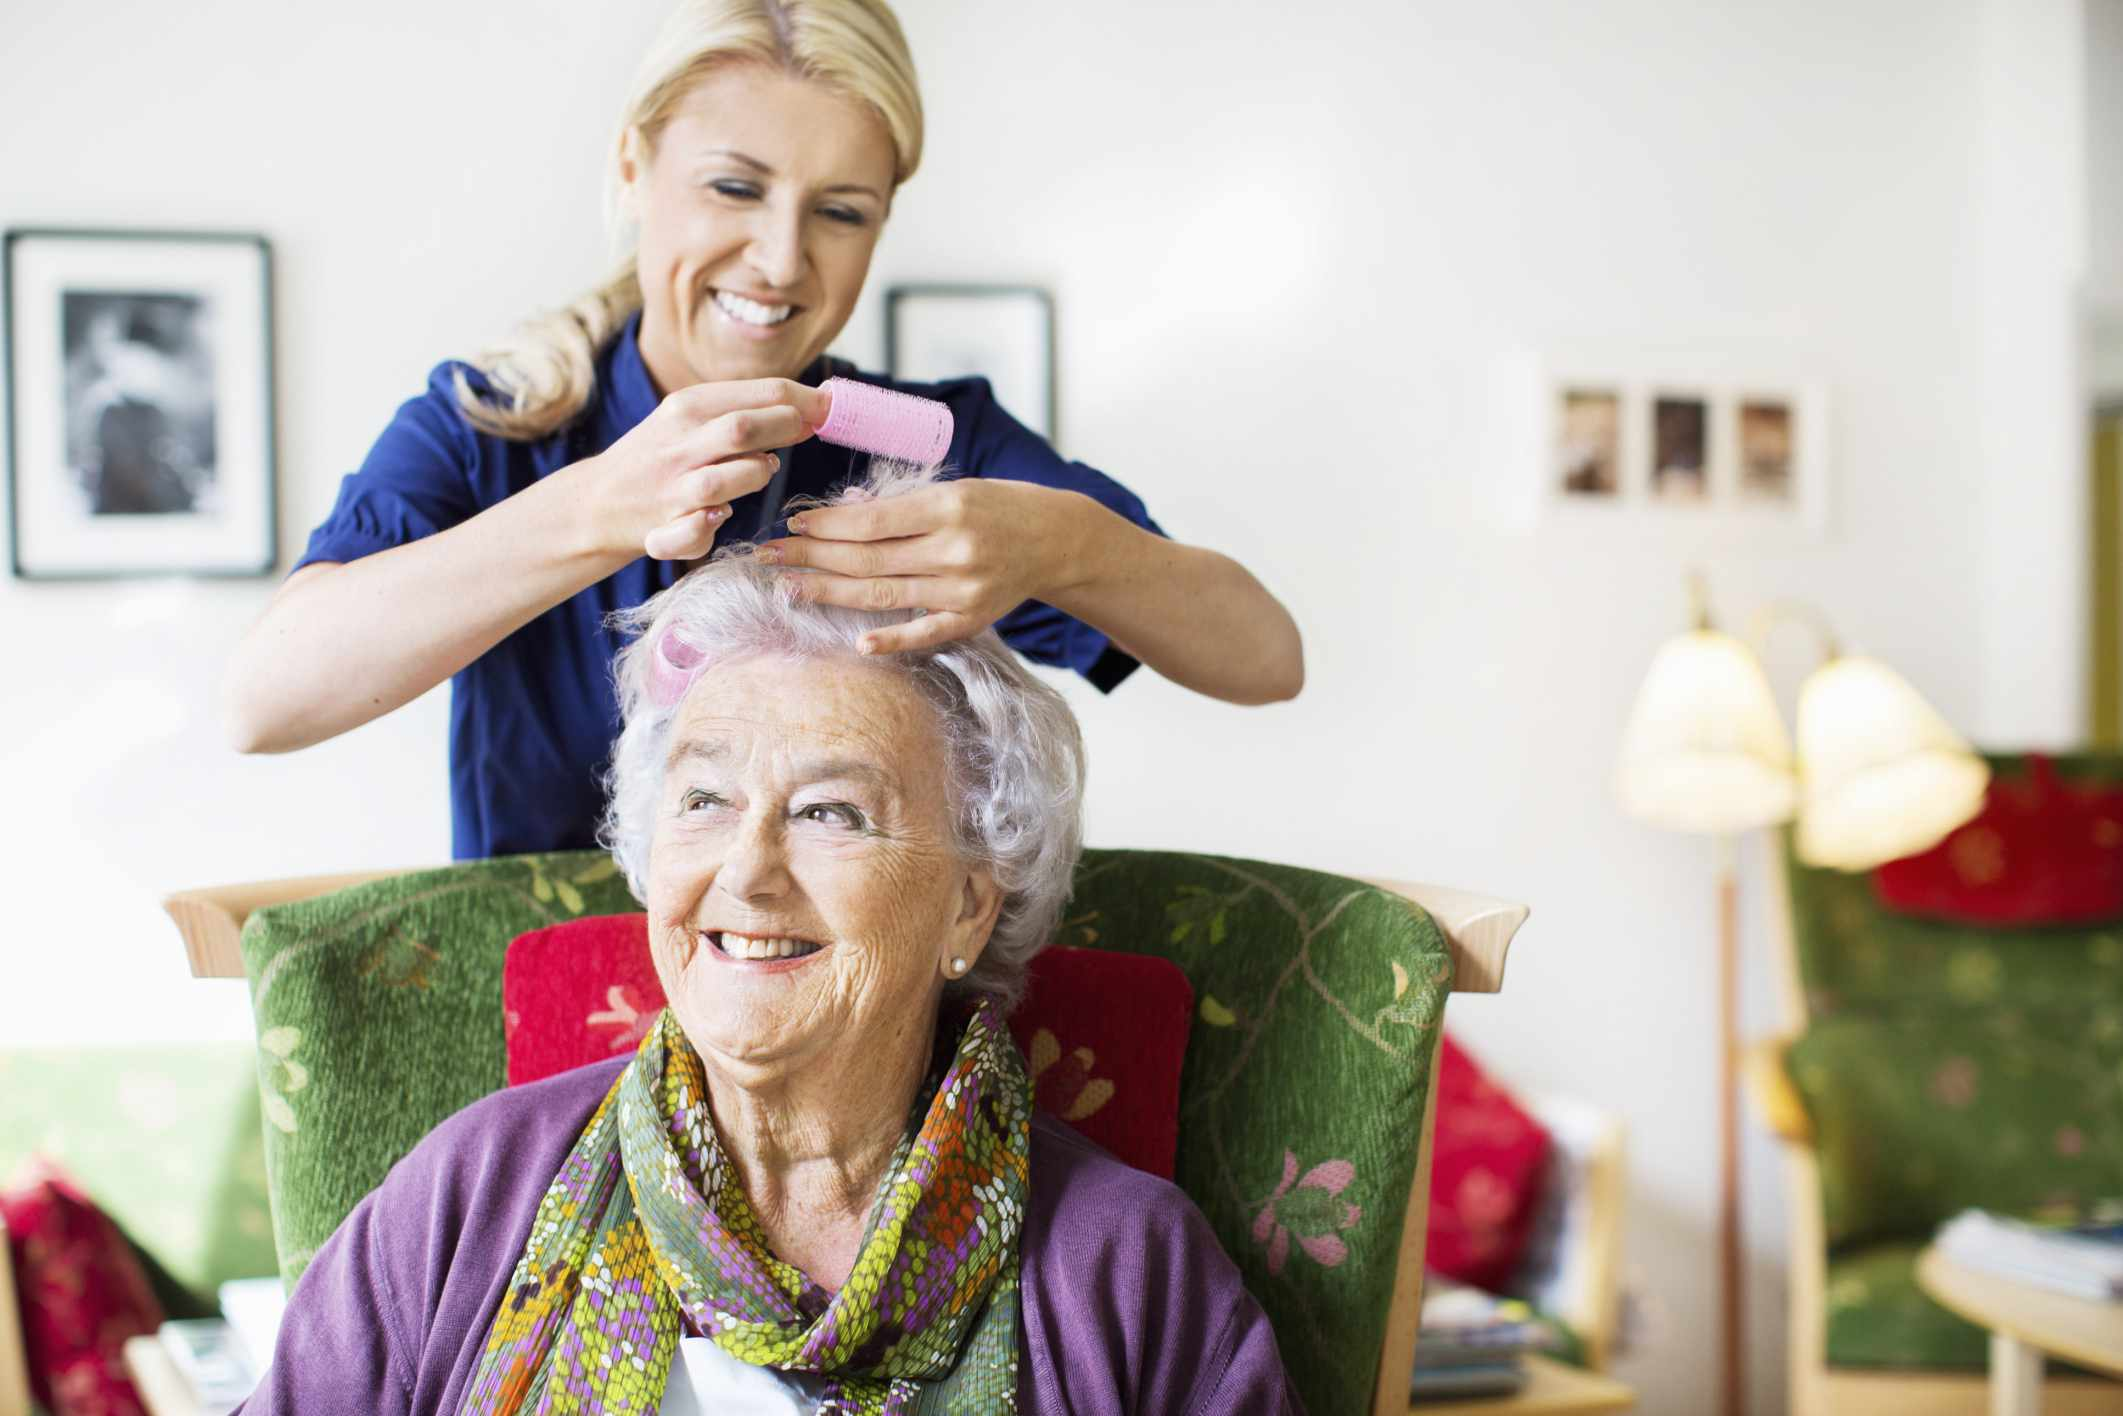 Woman styling a mature woman's hair in a home setting, both smiling